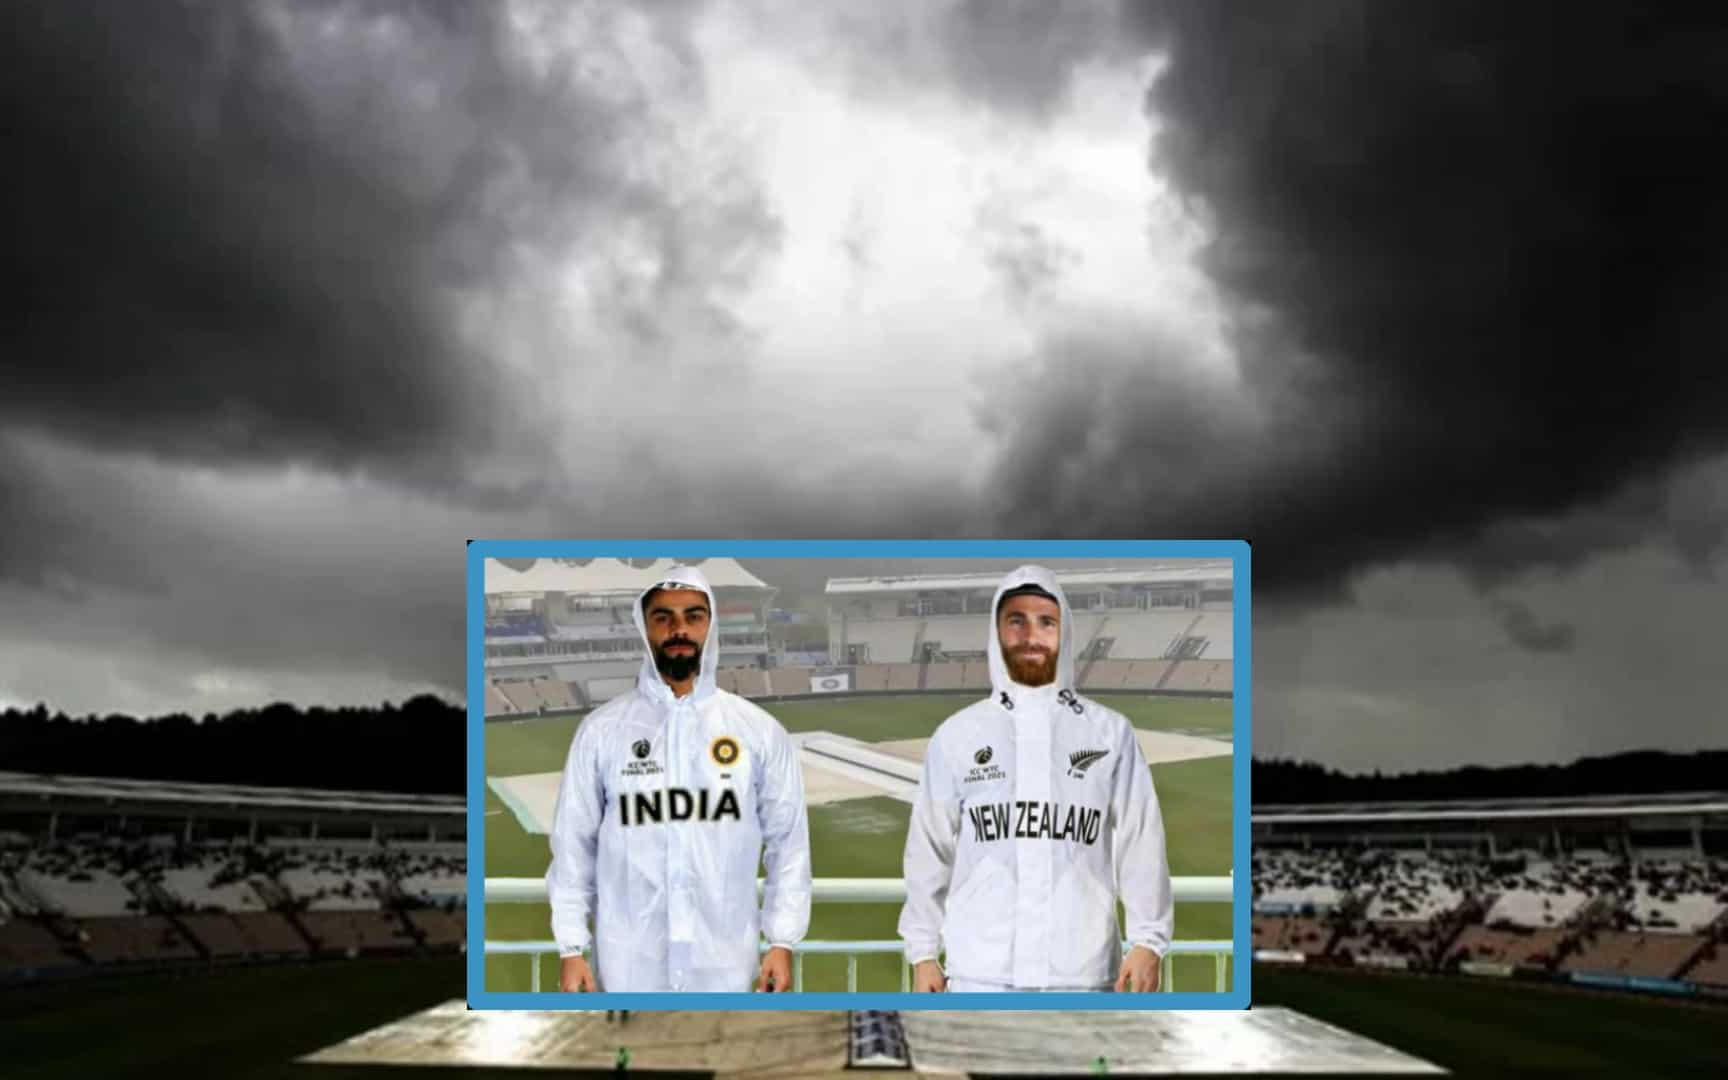 Fans Slams ICC On Twitter After Rain Washes Out First Day Of India vs New Zealand WTC Final In Southampton